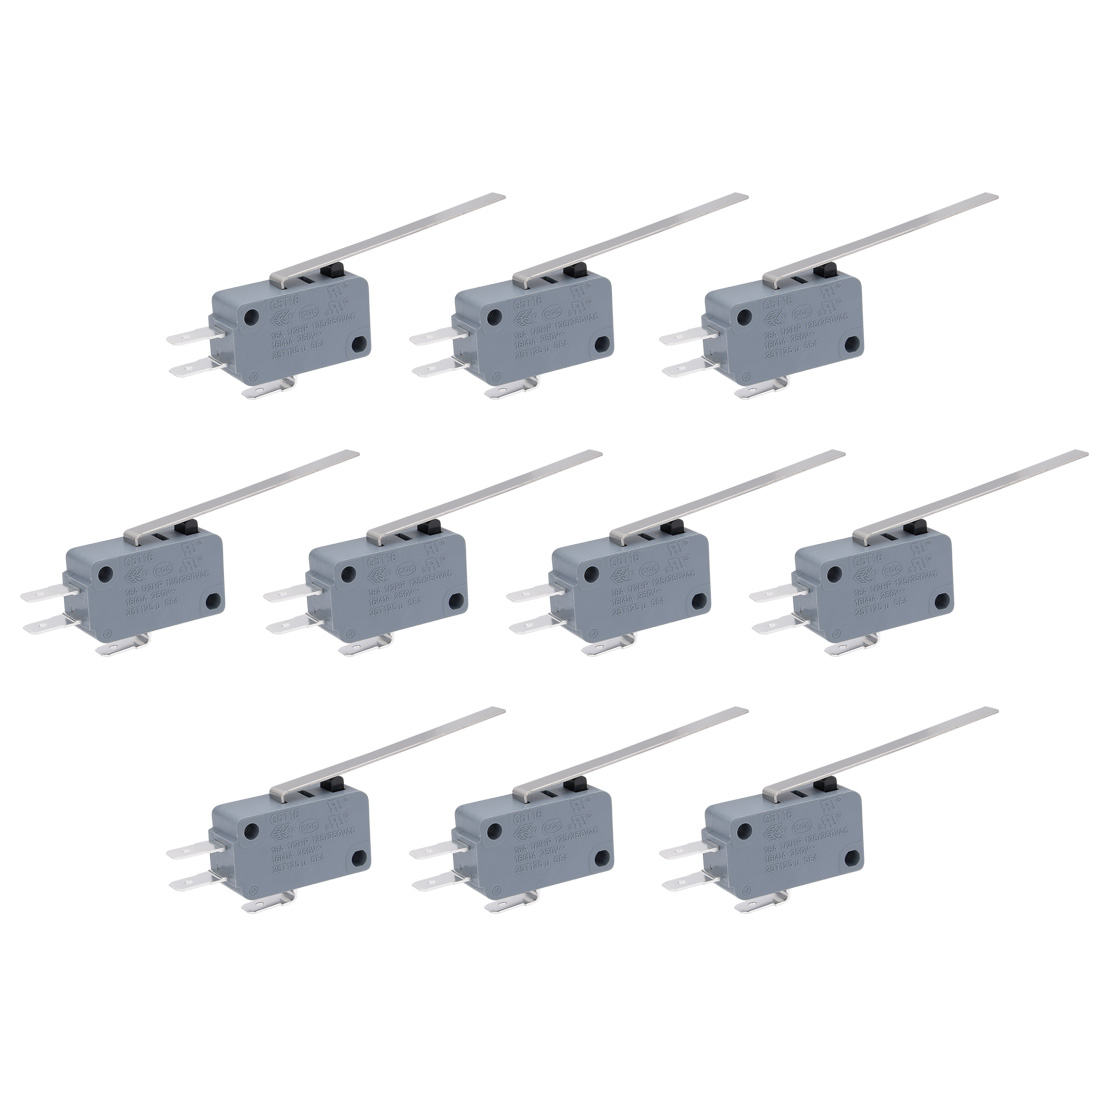 SPDT 1NO 1NC Long Straight Hinge Lever Momentary Actuator Micro Switch 5 Pcs